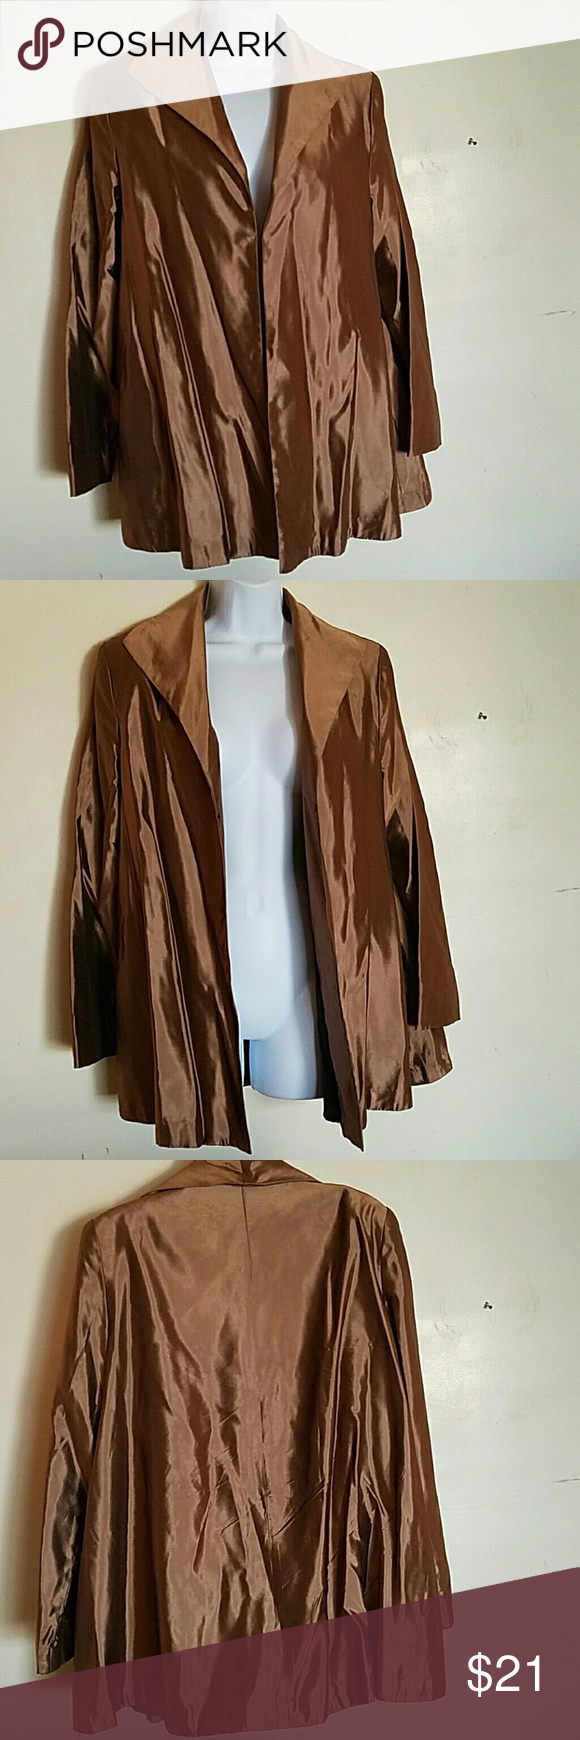 Silky Swing Jacket by Jessica McClintock Cape-like, silky jacket with 2 front snaps. Great for dress-up and special occasions. Good shape. Lightly worn. Dark champagne color. Jessica McClintock Jackets & Coats Capes